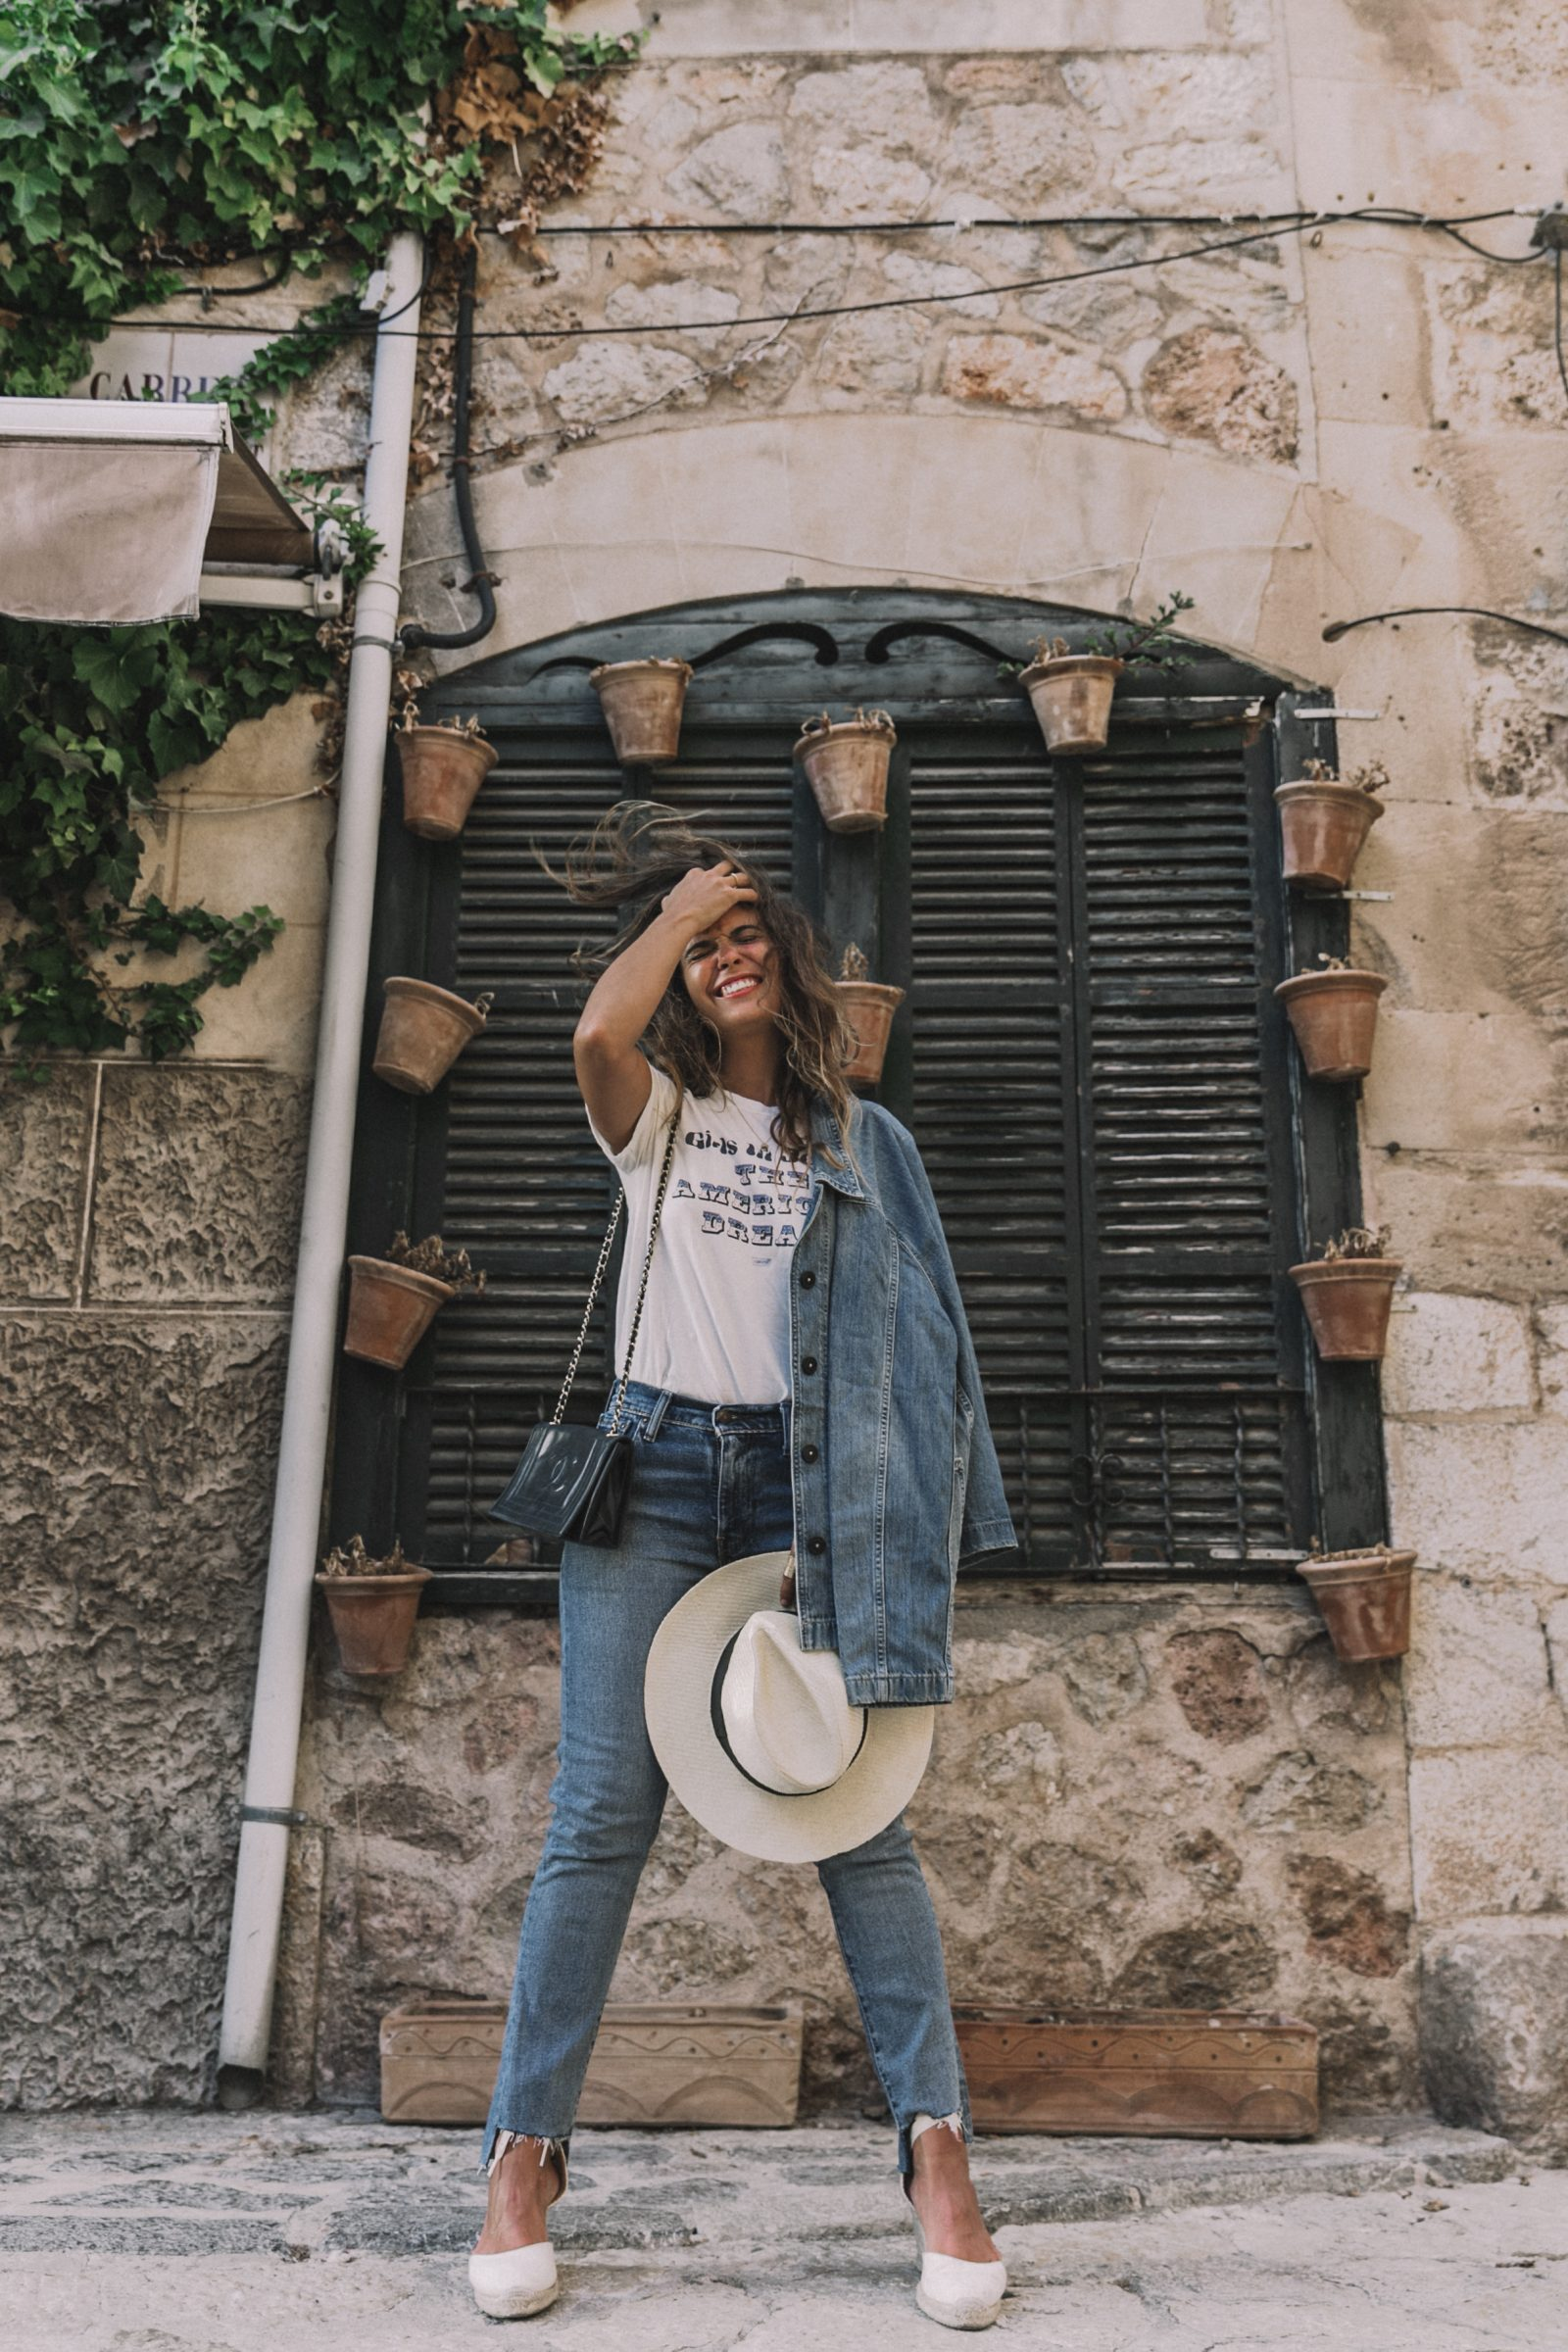 Live_in_Levis-Denim-Who_What_Wear-Levis-Denim-Double_Denim-Menorca-Street_Style-Collage_Vintage-94